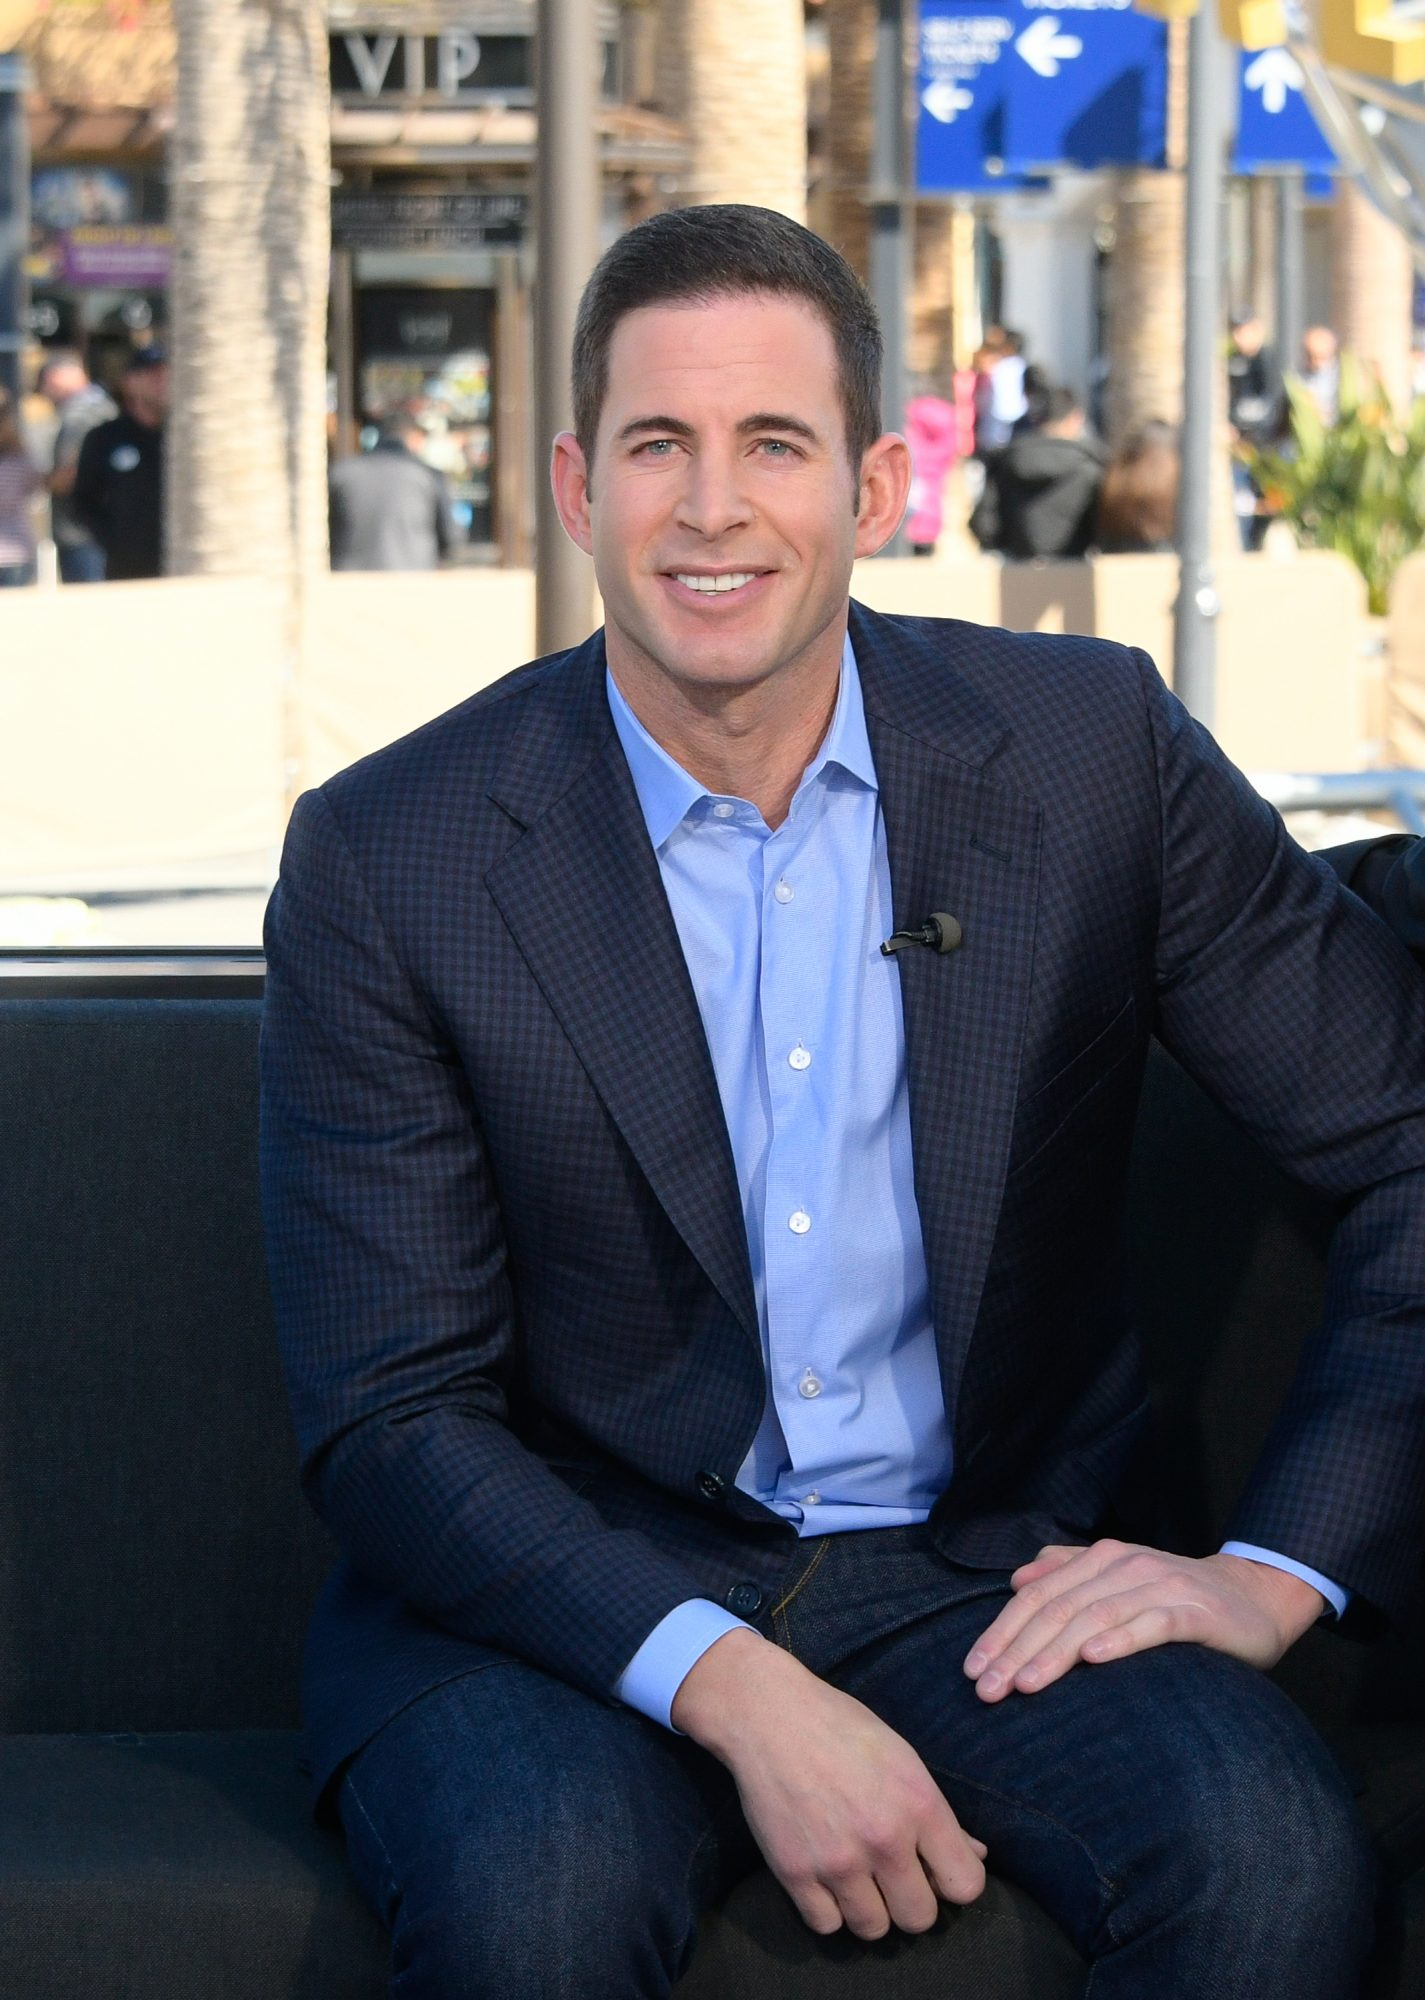 Tarek El Moussa Seated